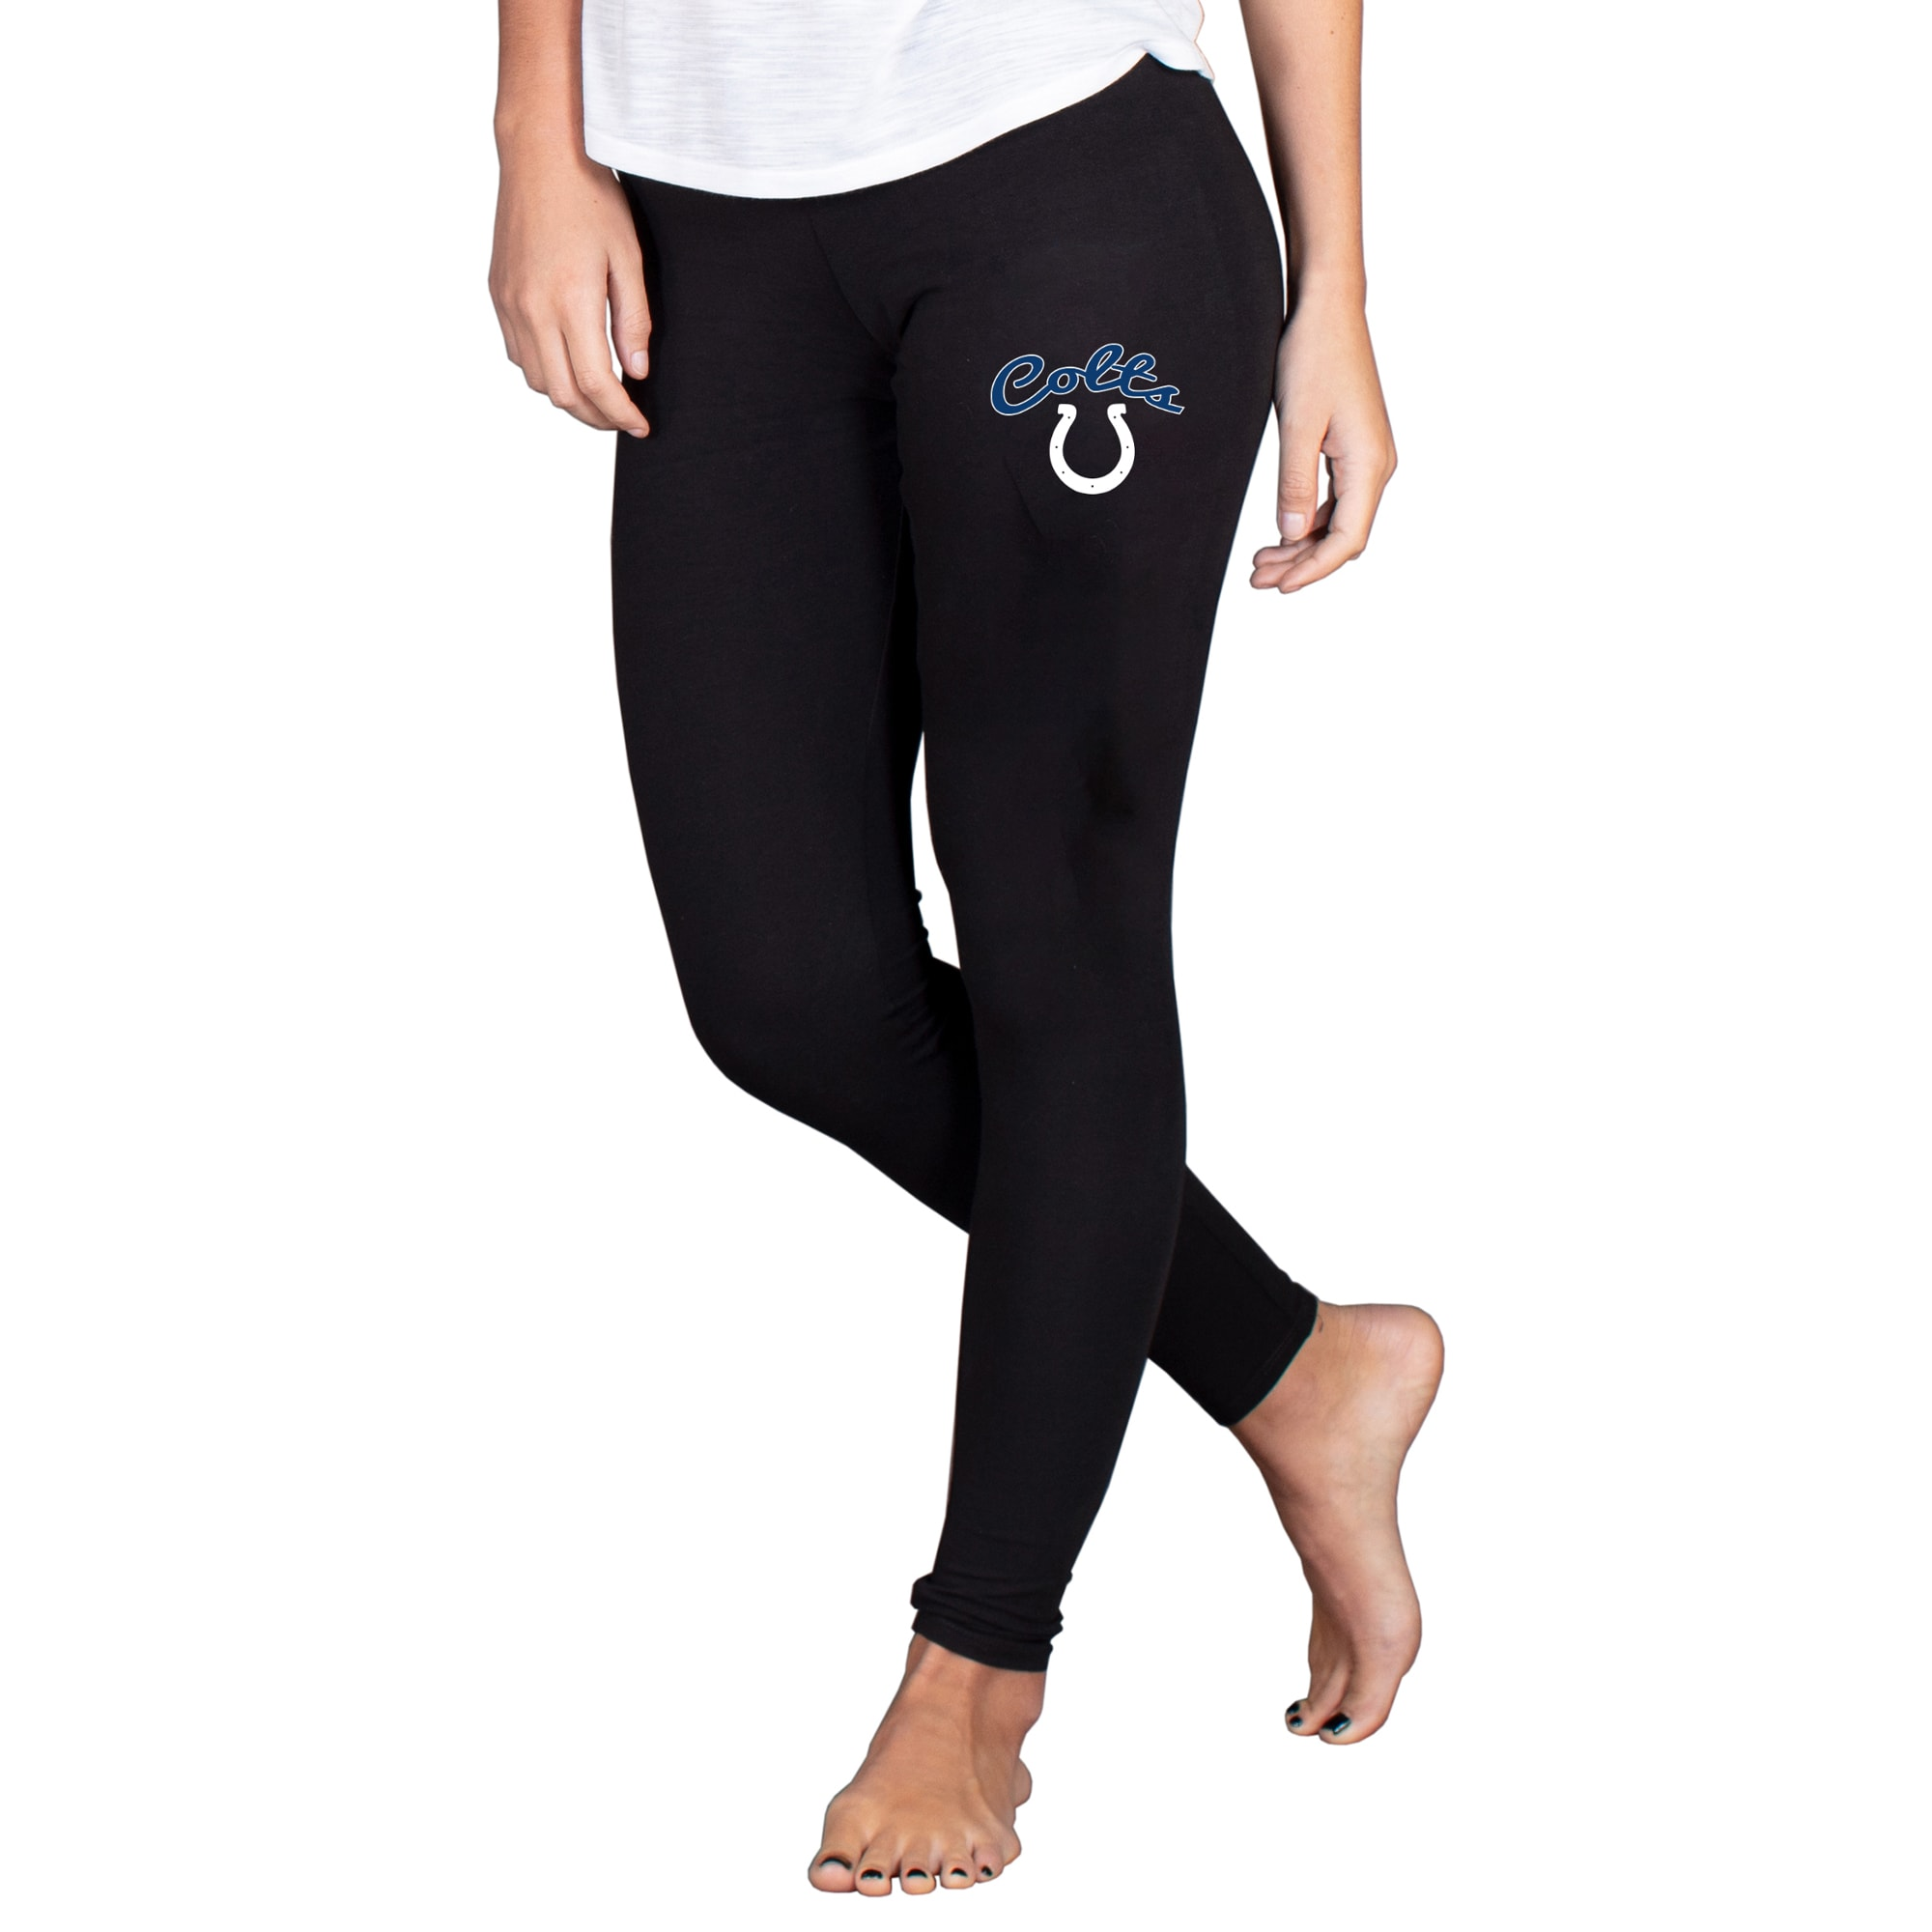 Indianapolis Colts Concepts Sport Women's Fraction Leggings - Black